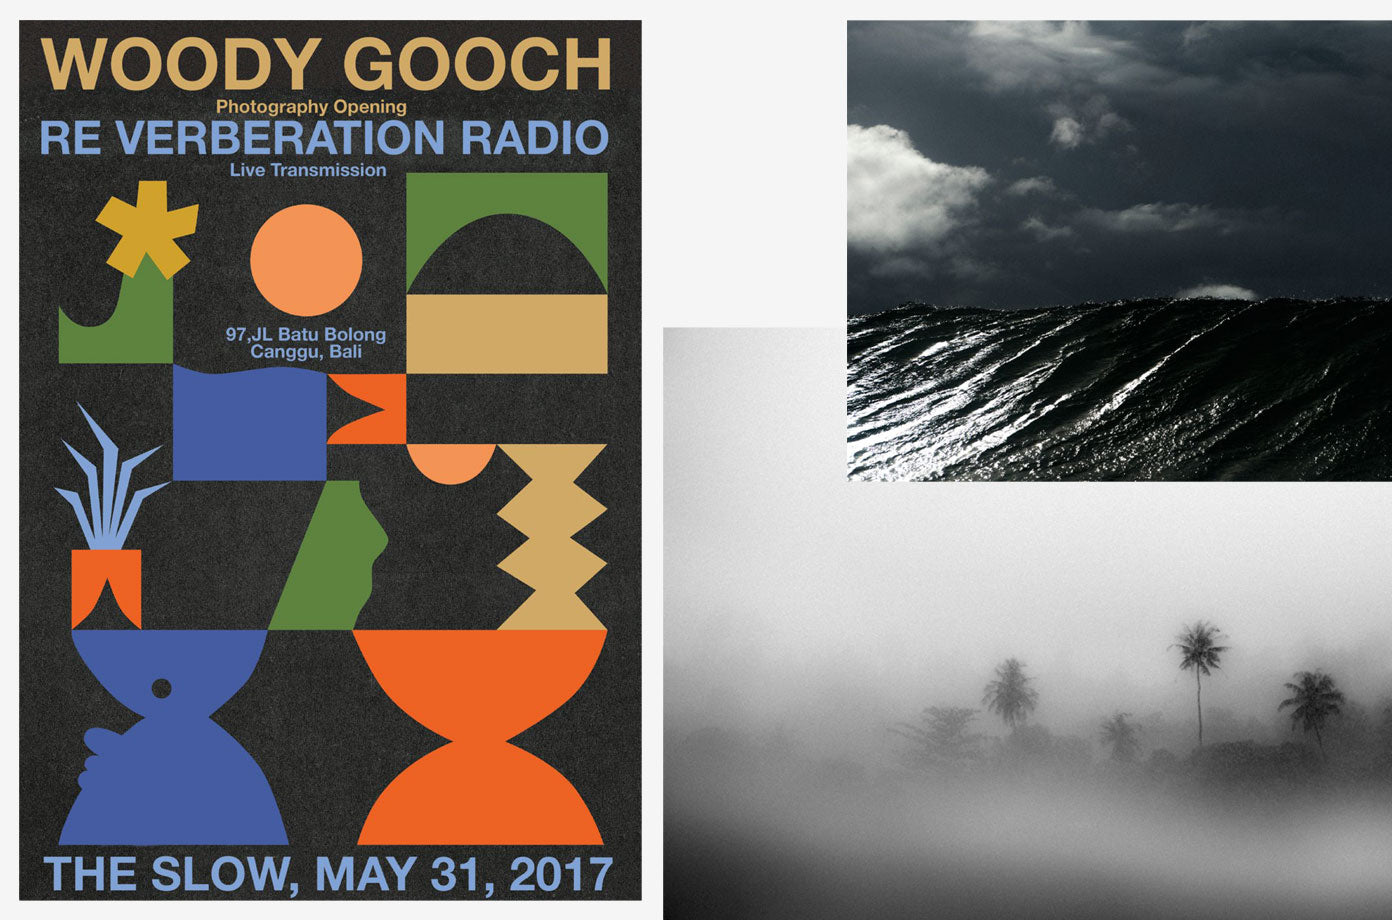 Woody Gooch Show at The Slow